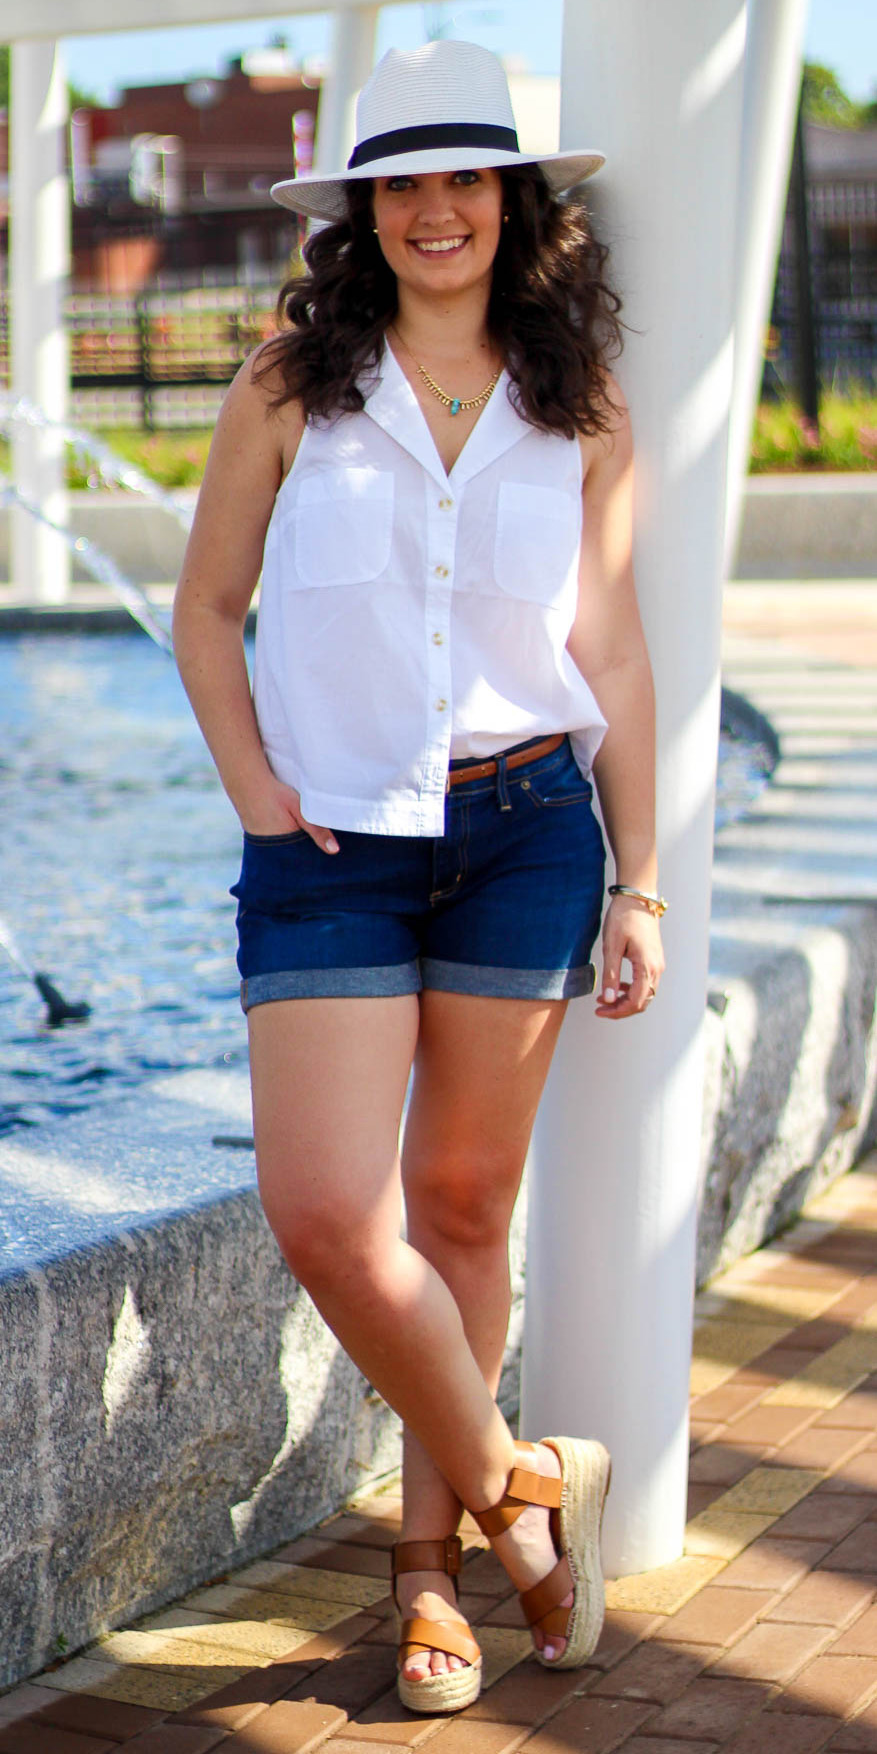 how-to-style-blue-navy-shorts-cognac-shoe-sandalw-white-top-brun-hat-necklace-spring-summer-fashion-weekend.jpg